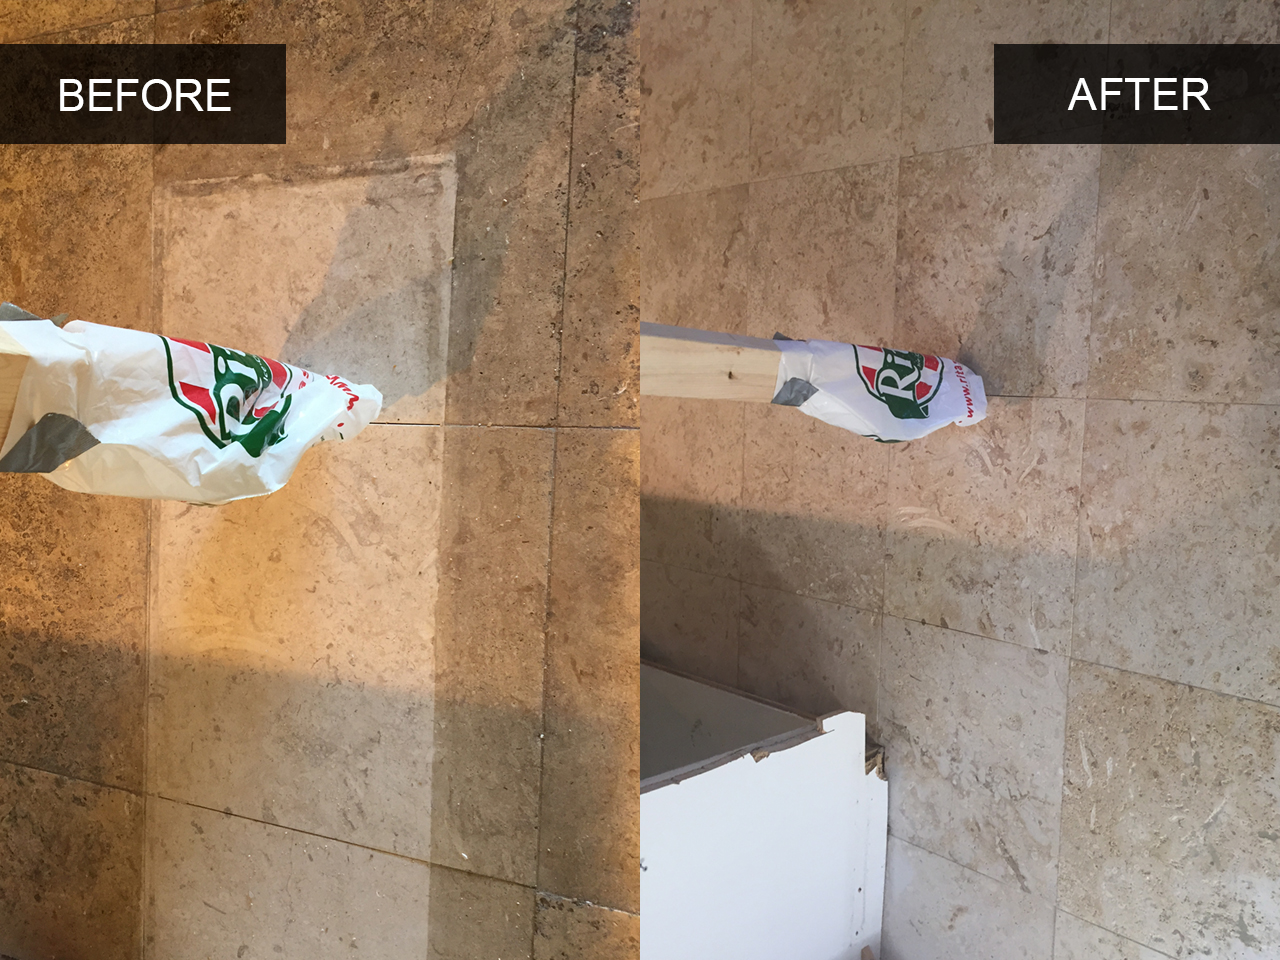 Kitchen Travertine Tile Cleaning Before and After